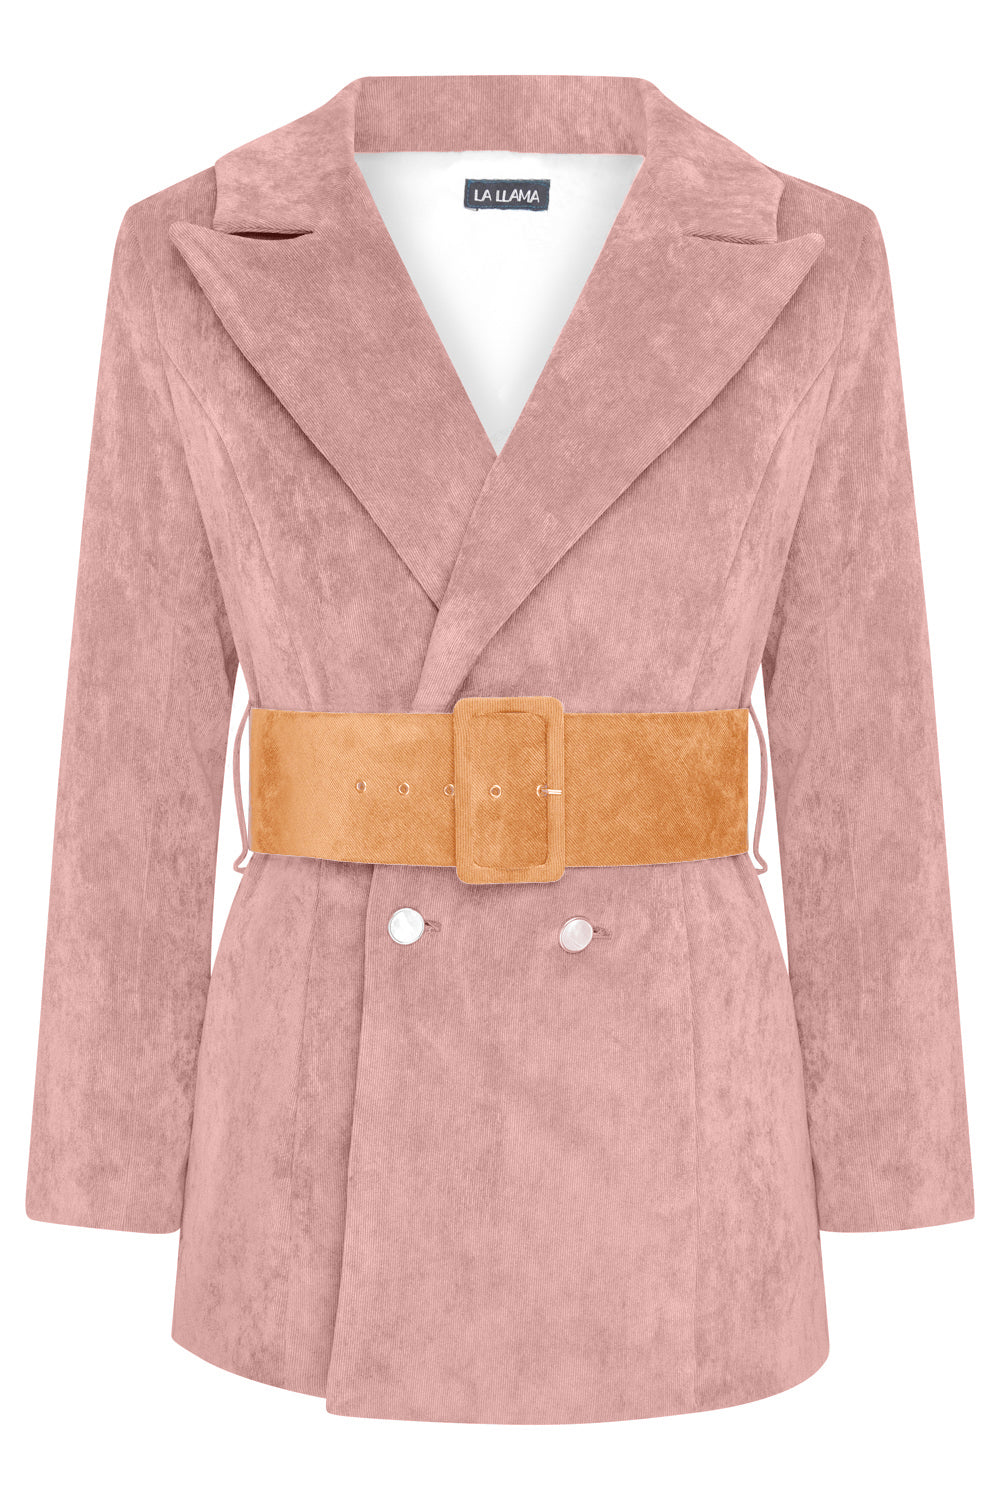 HYDRA BLAZER - DUSKY PINK WITH ORANGE BELT